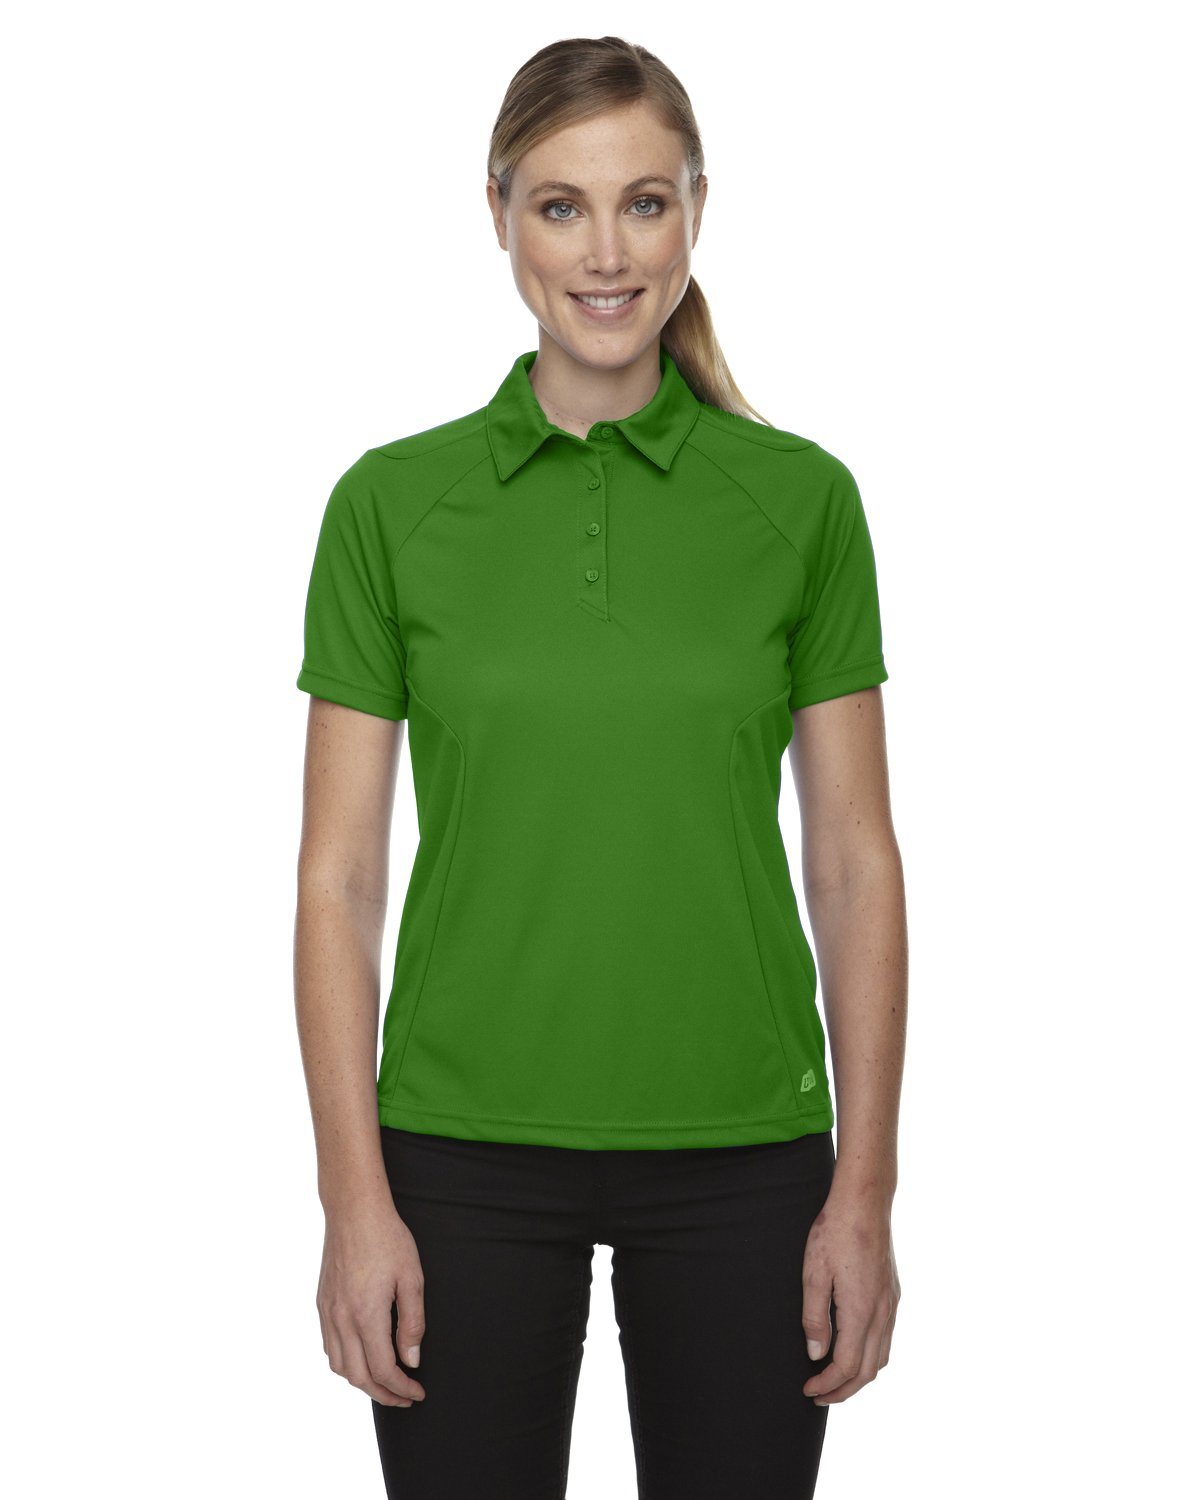 Ash City Womens Dolomite Performance Polo (XX-Large, Valley Green) by Ash City Apparel